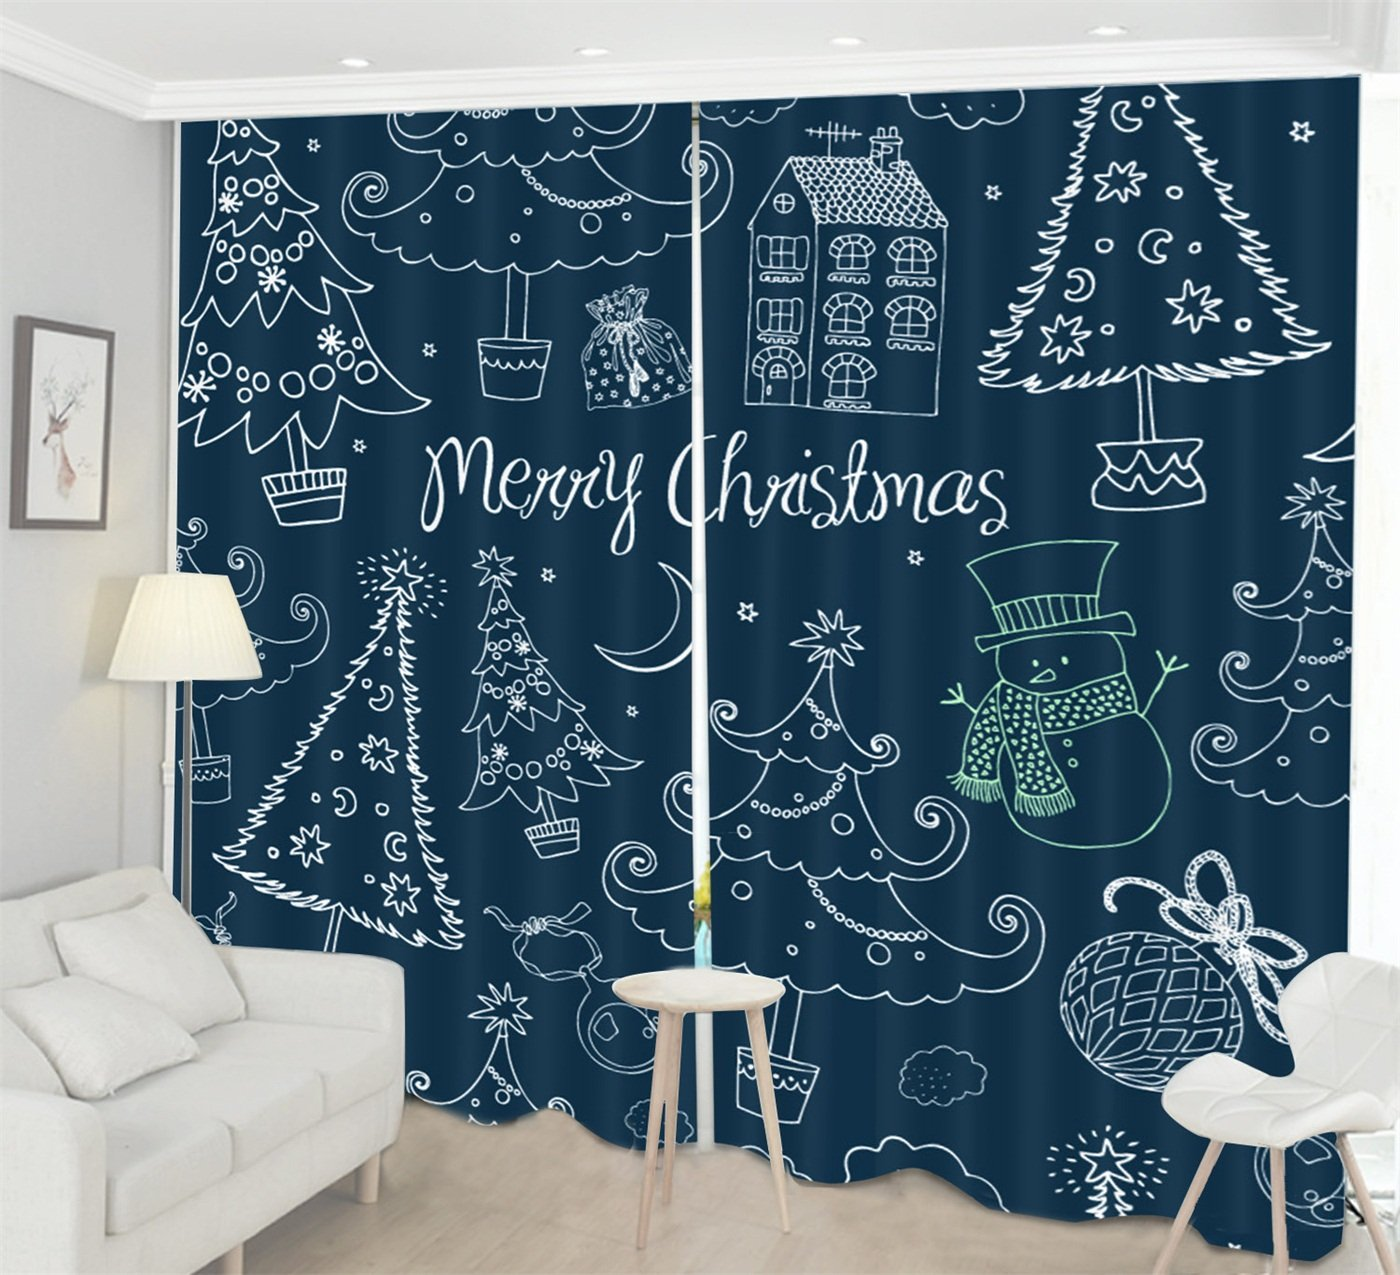 LB Christmas Themed Decor Curtains for Window, Unique Funky Cartoon Stick Figure Xmas Tree Snowman, Living Room Kids Room Window Drapes, 118x106 Inches (2 Panels Size) , Navy Blue White